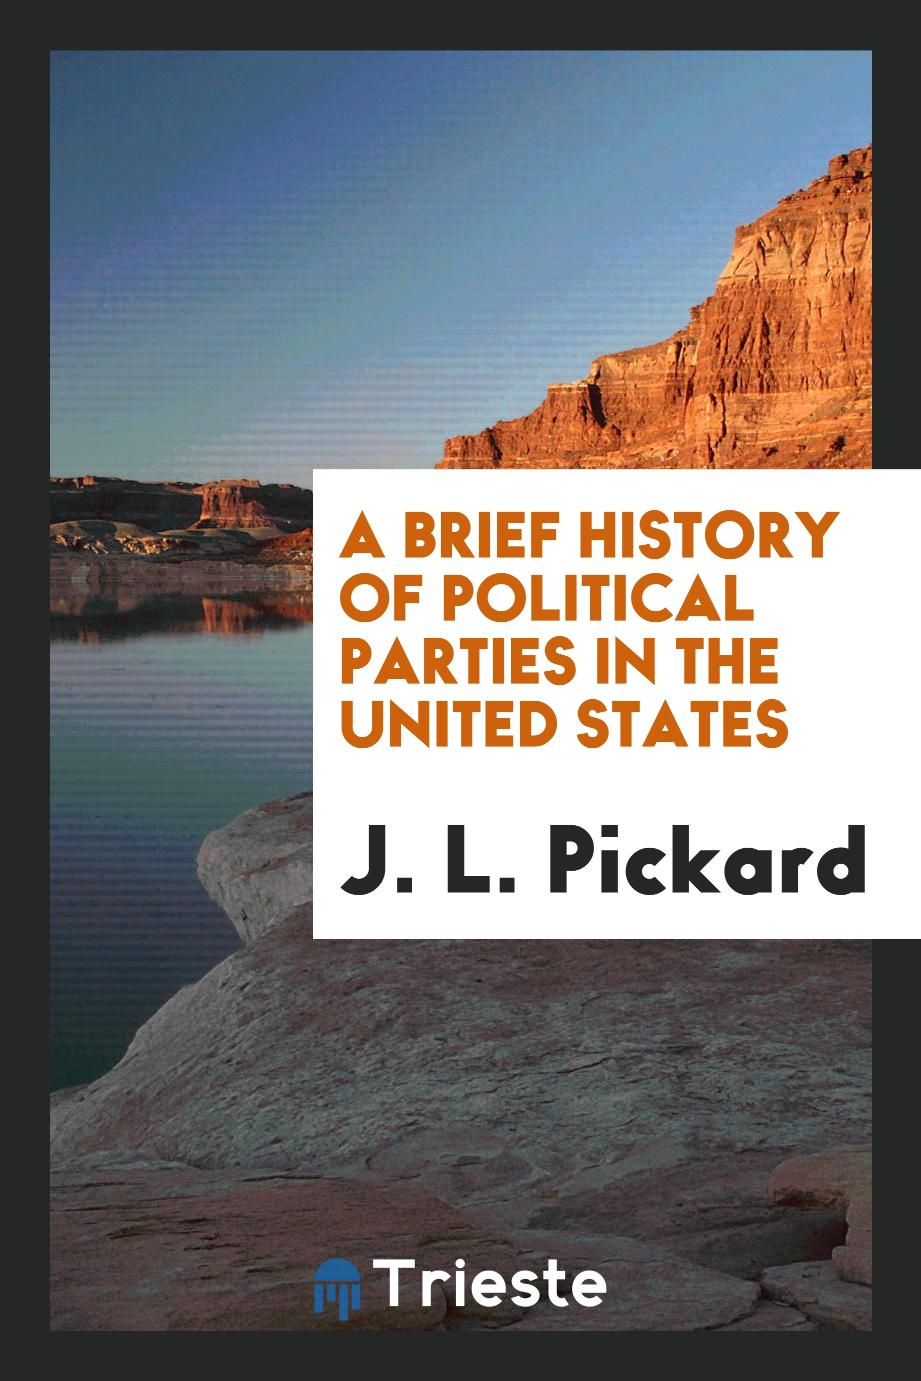 A brief history of political parties in the United States